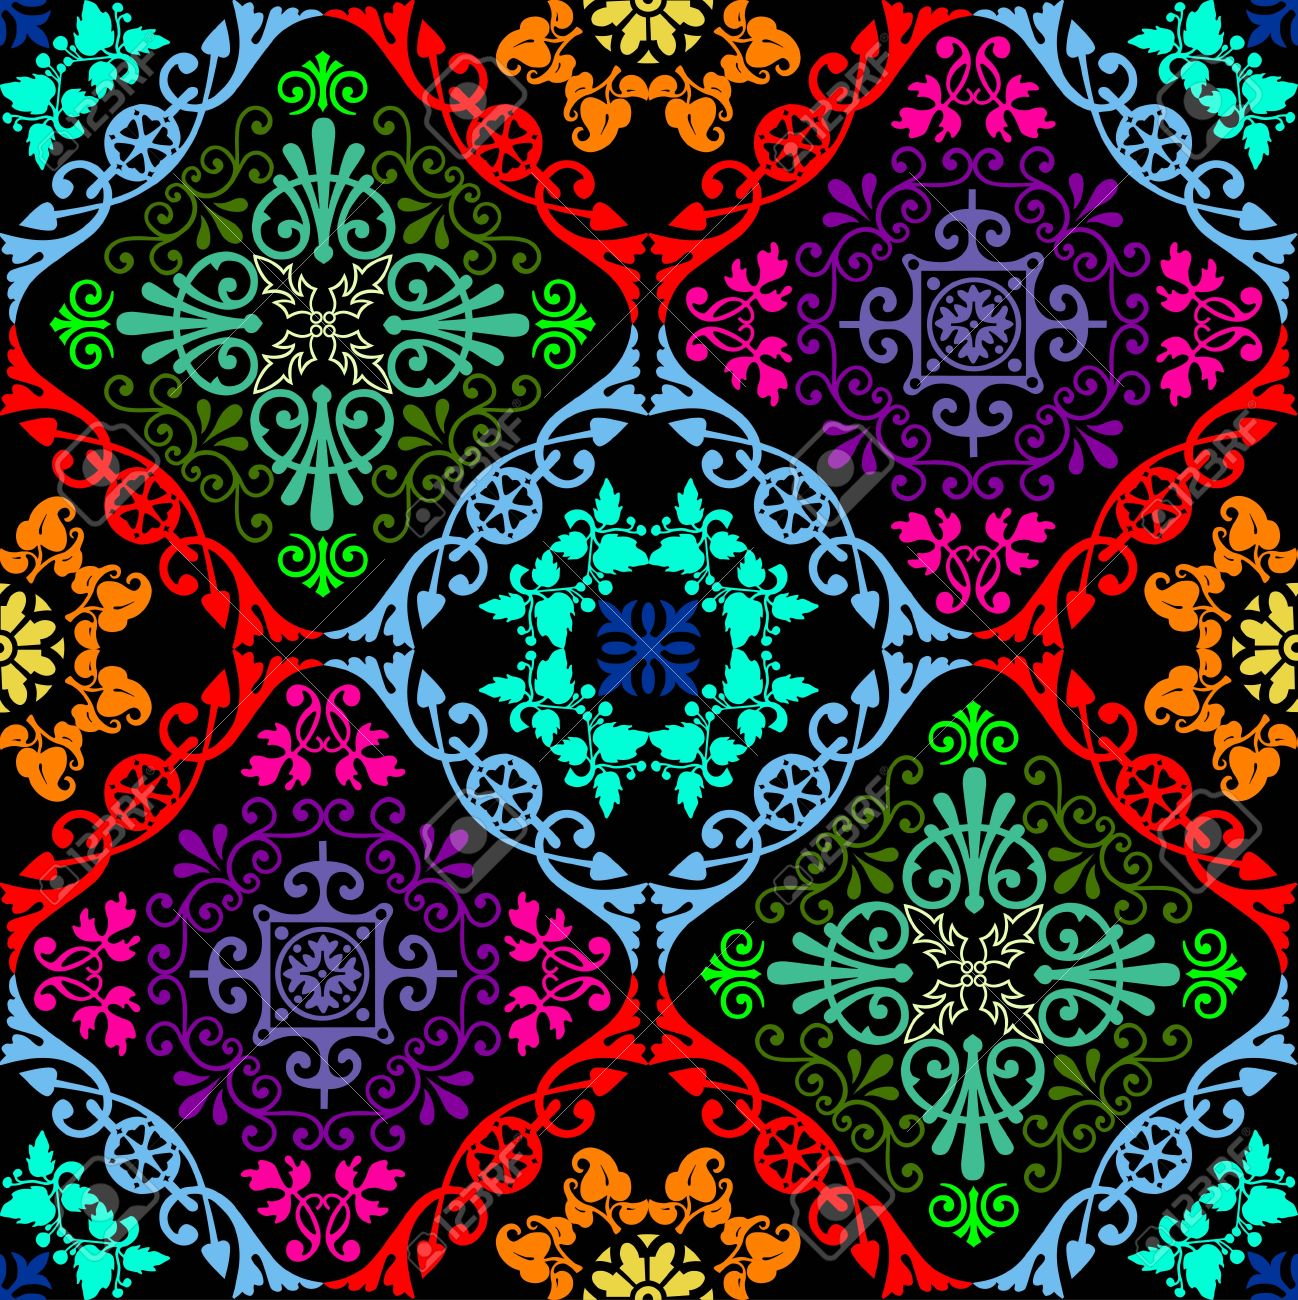 Fusion of old damask ornament with fluorescent colors - 46781089